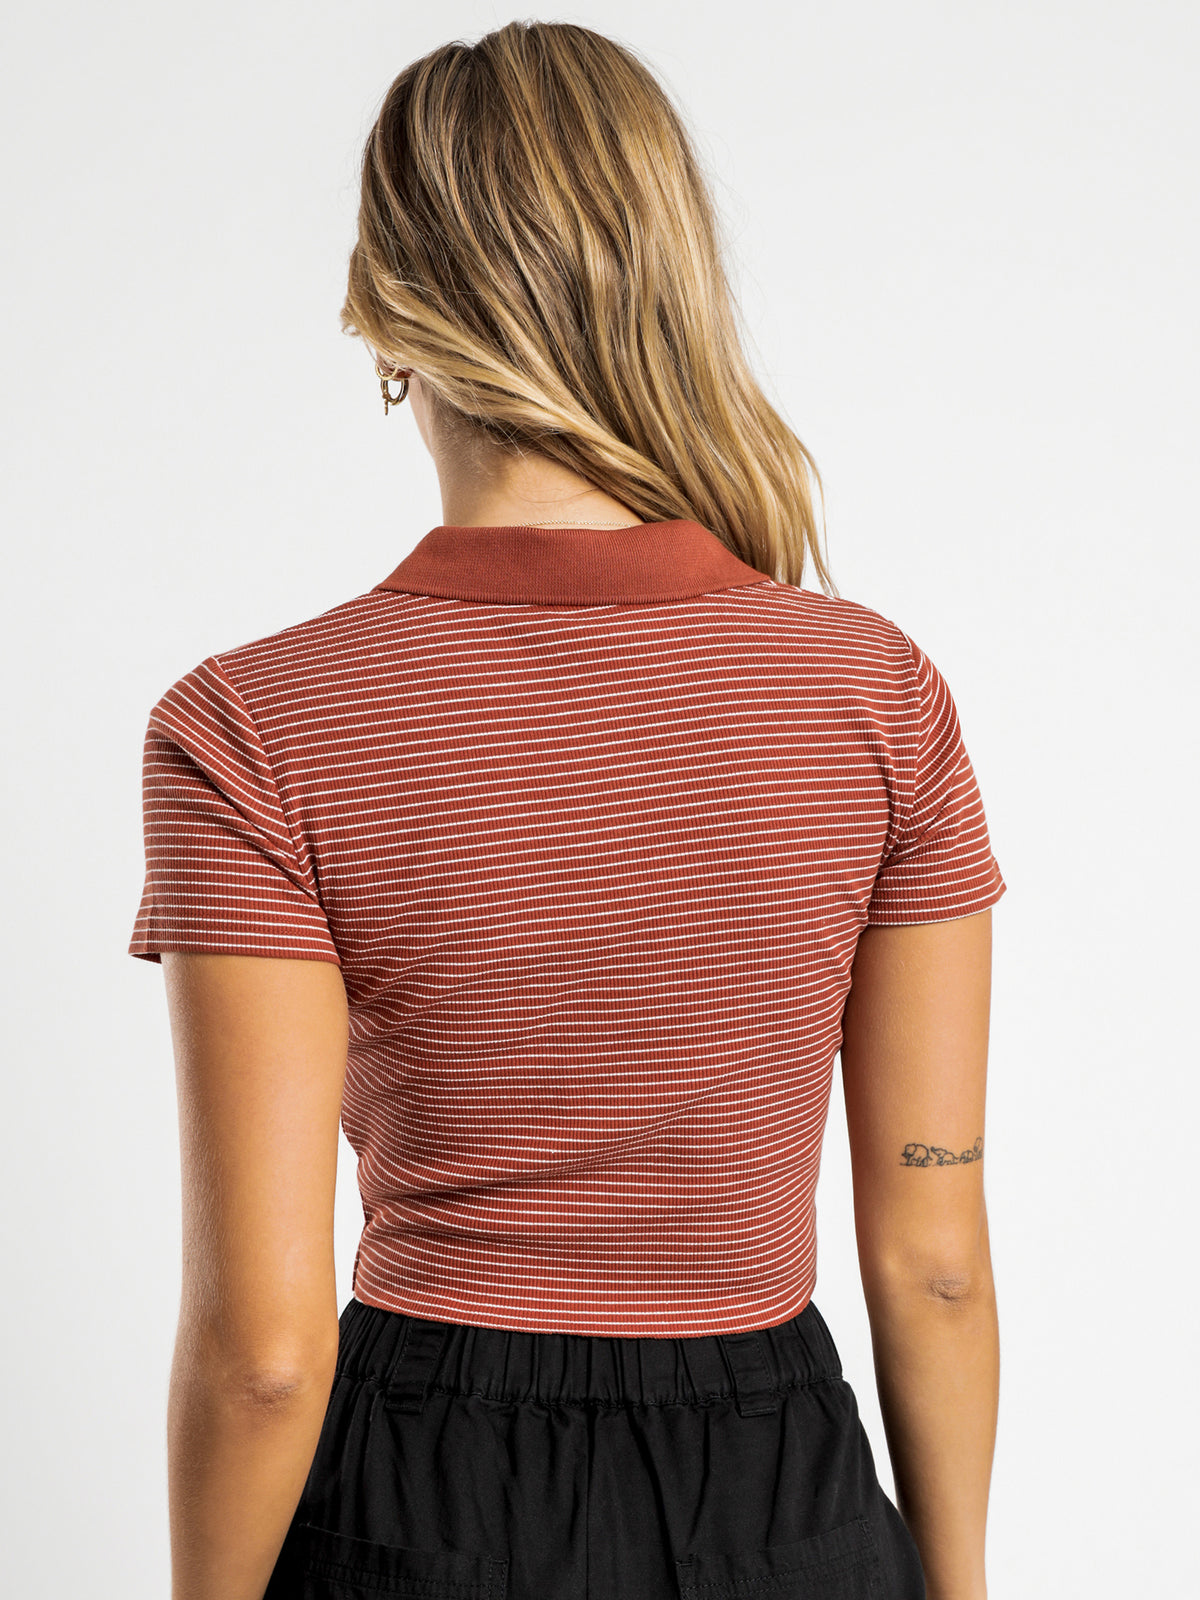 Markham Rib T-Shirt in Rust Stripe